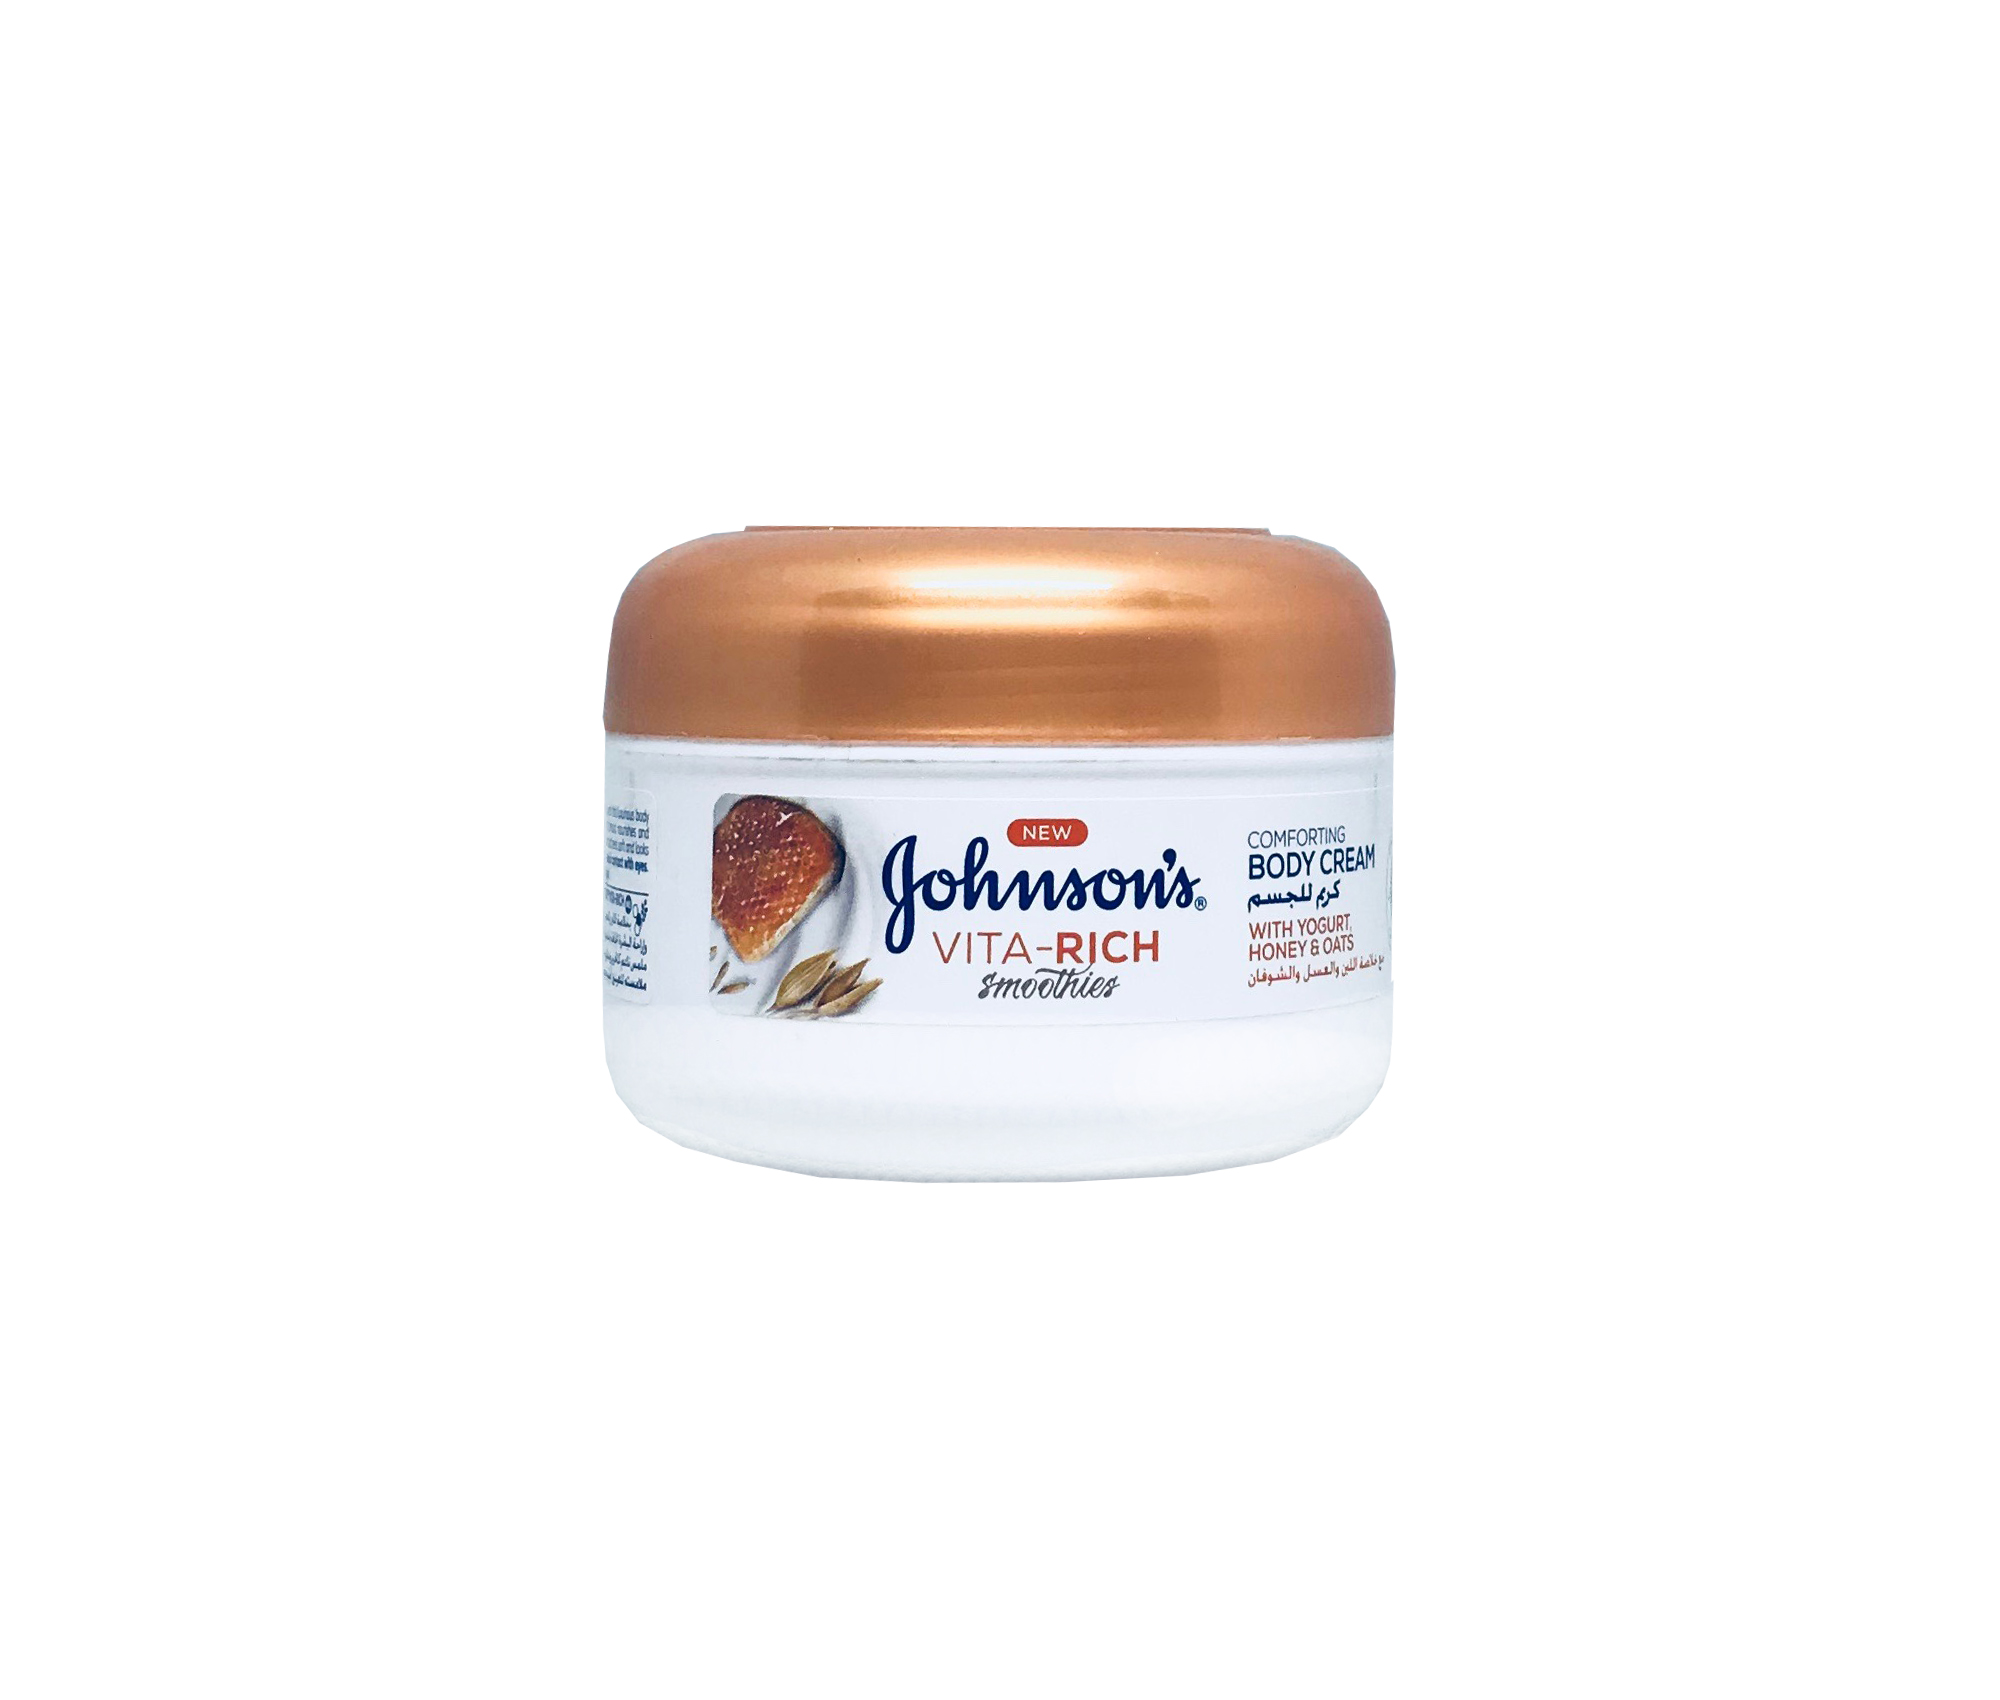 Skin Care Products Face And Body Johnsons Acnes Natural Wash Yogurt Vita Rich Smoothies Comforting Cream With Honey Oats